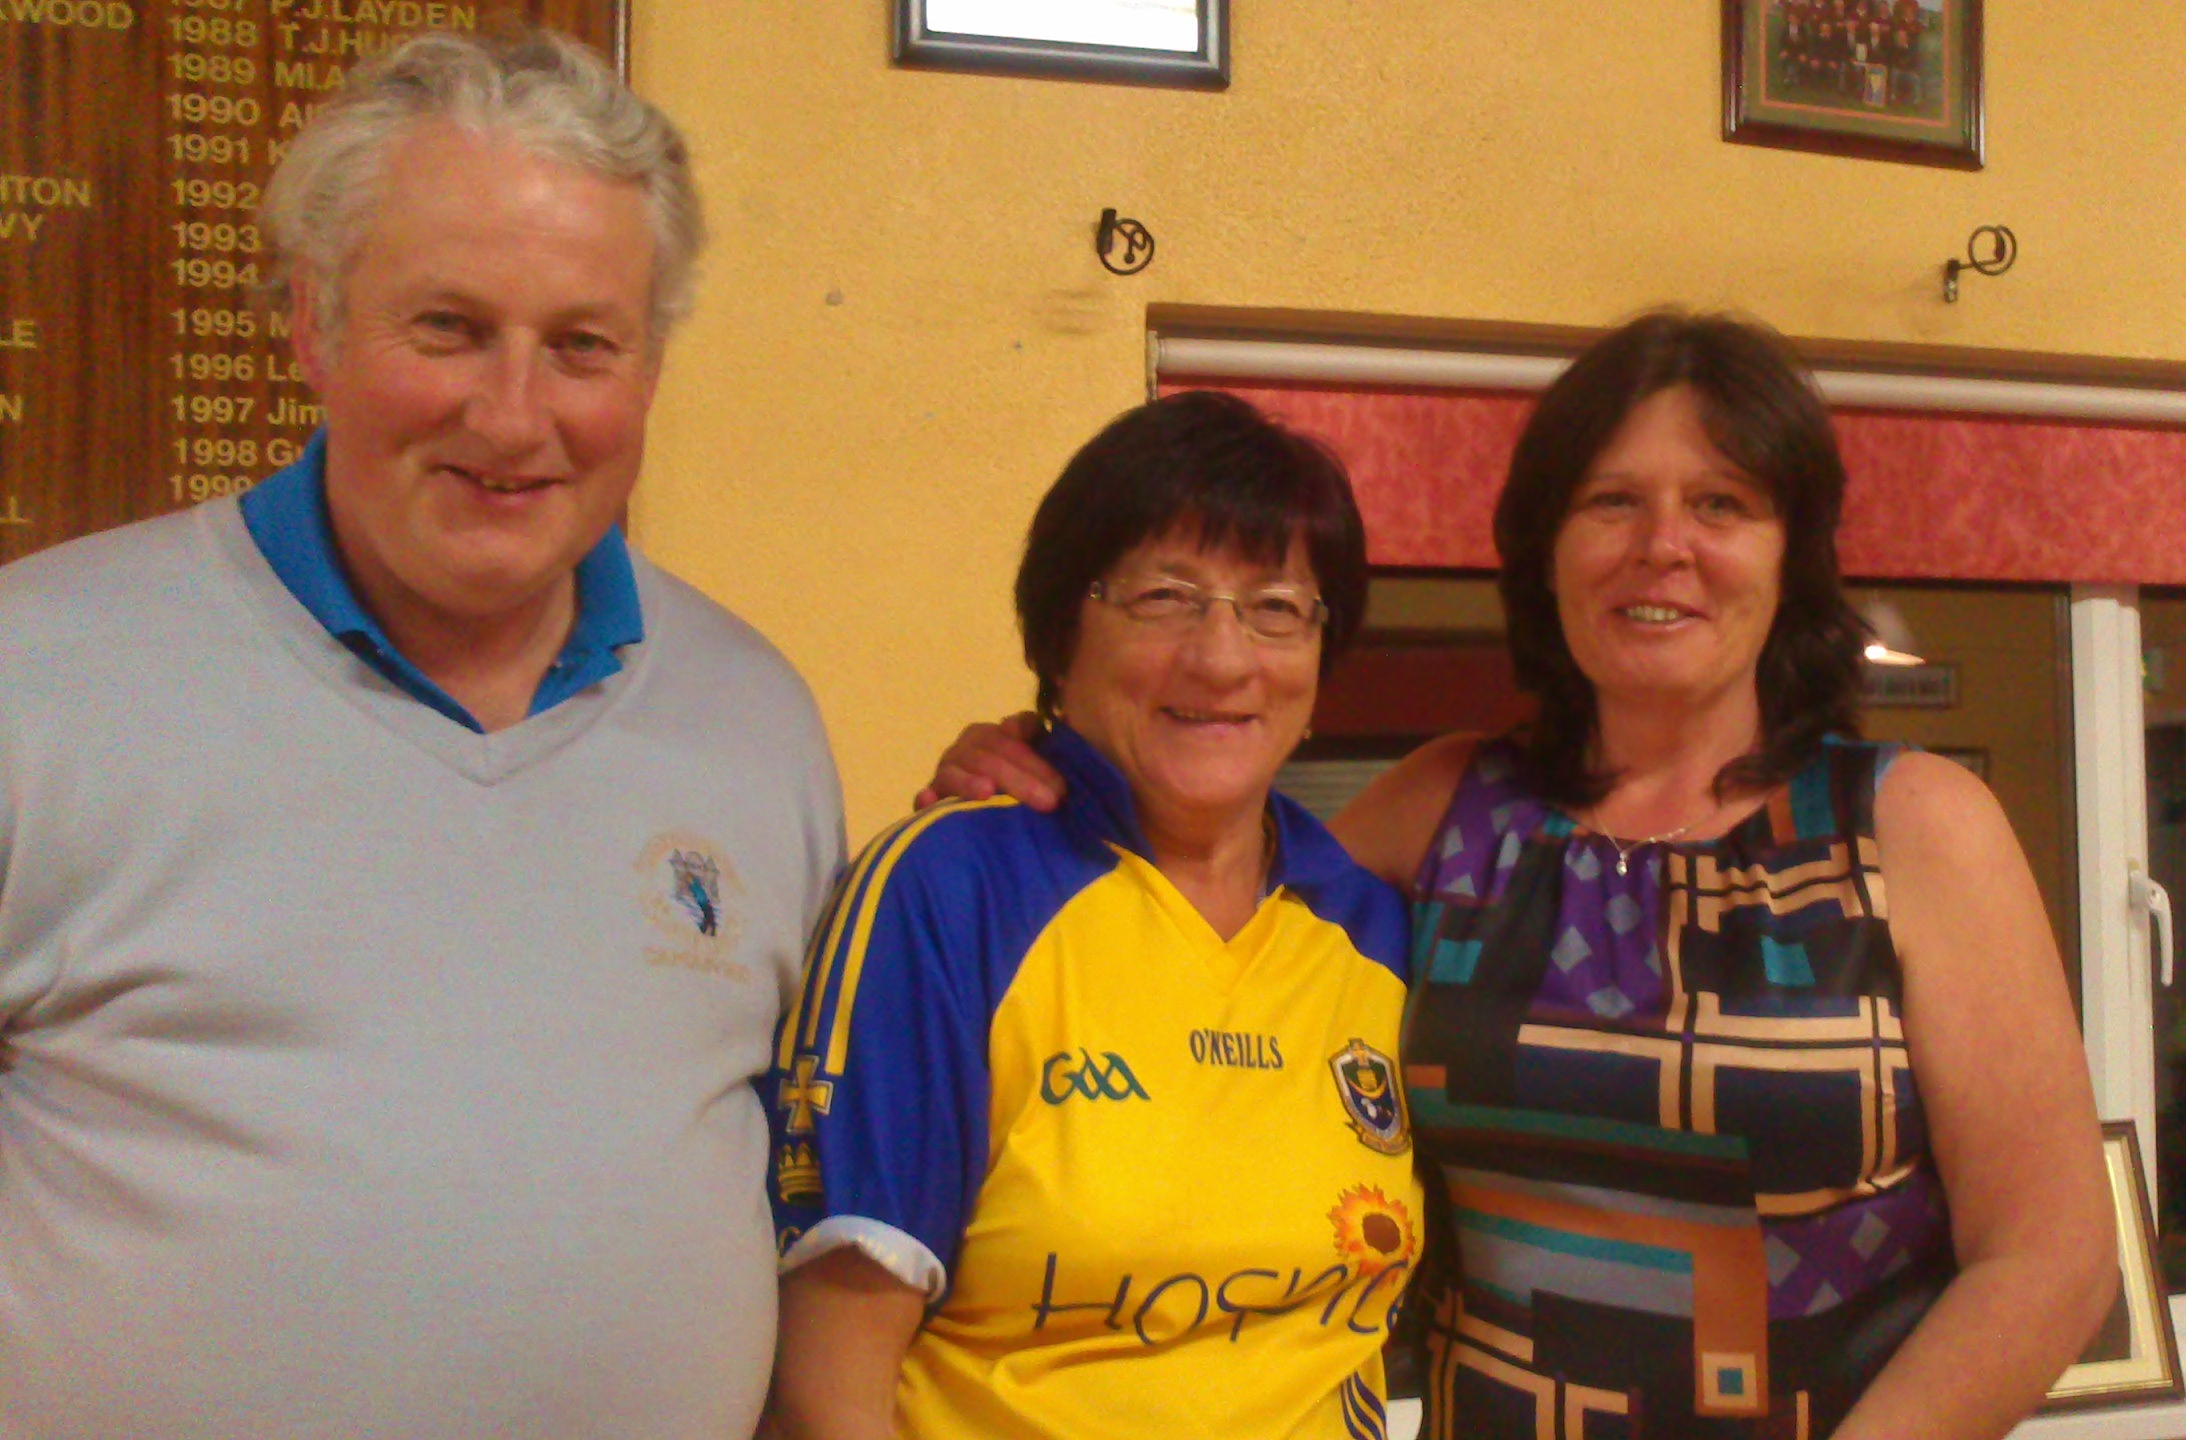 Captain Oliver Curran and Sam Beag Sponsor present Ladies First Prize to Brenda Kelly